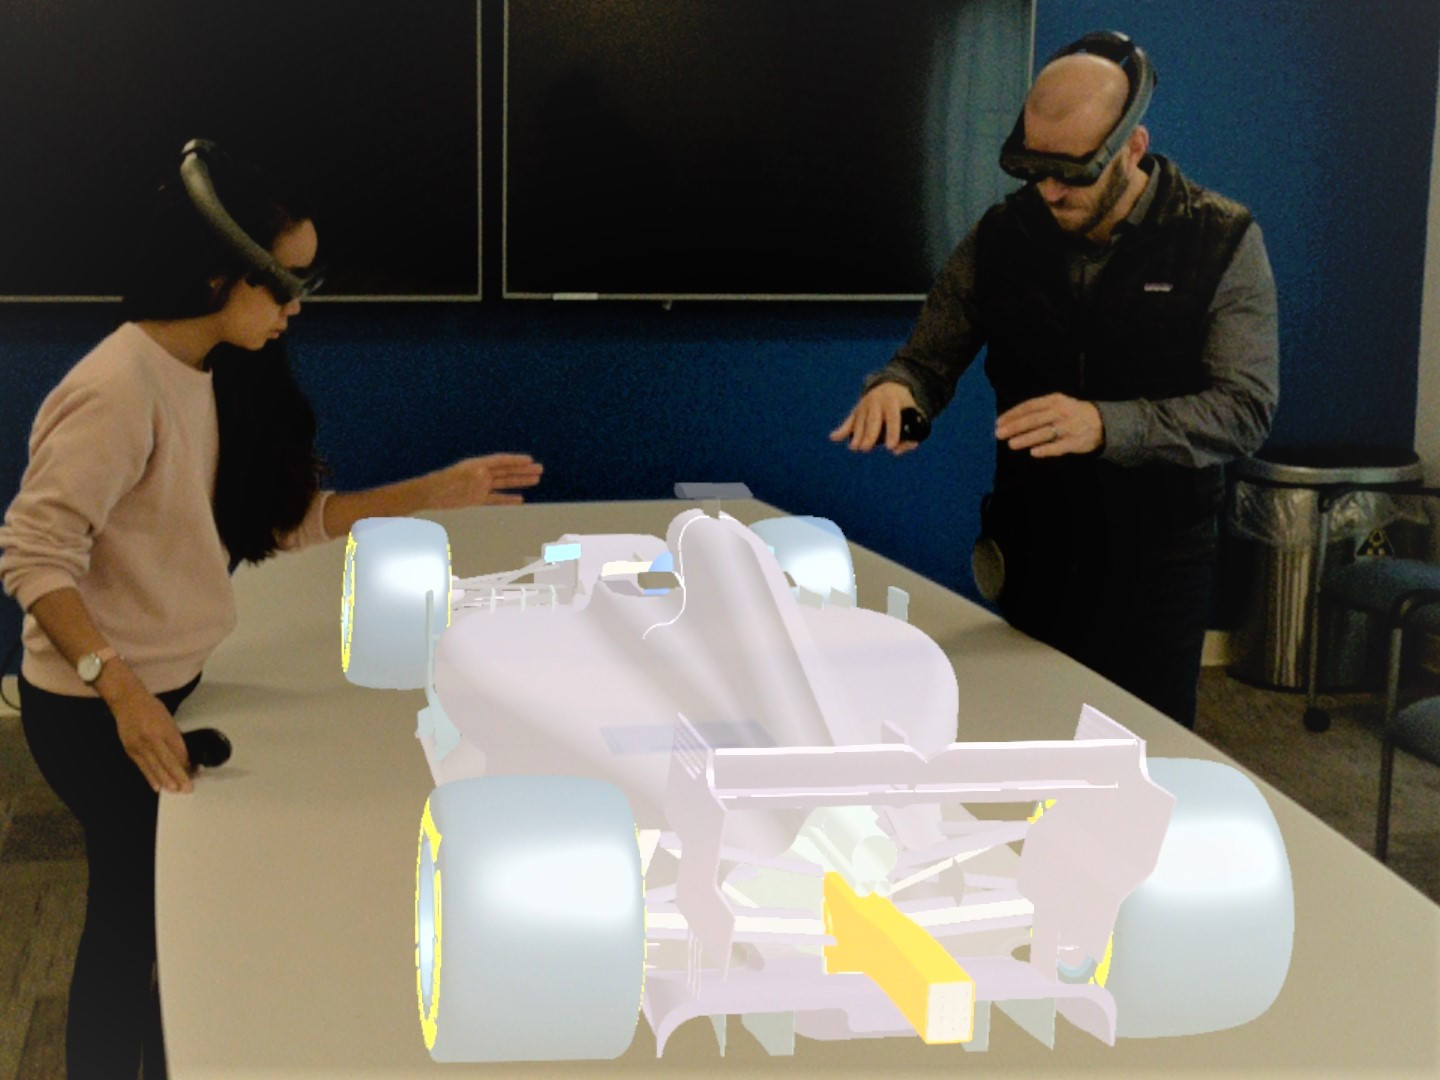 Onshape engineers testing out the new app with a Formula One car designed by an Onshape customer, Team Perrinn. Image via Magic Leap.